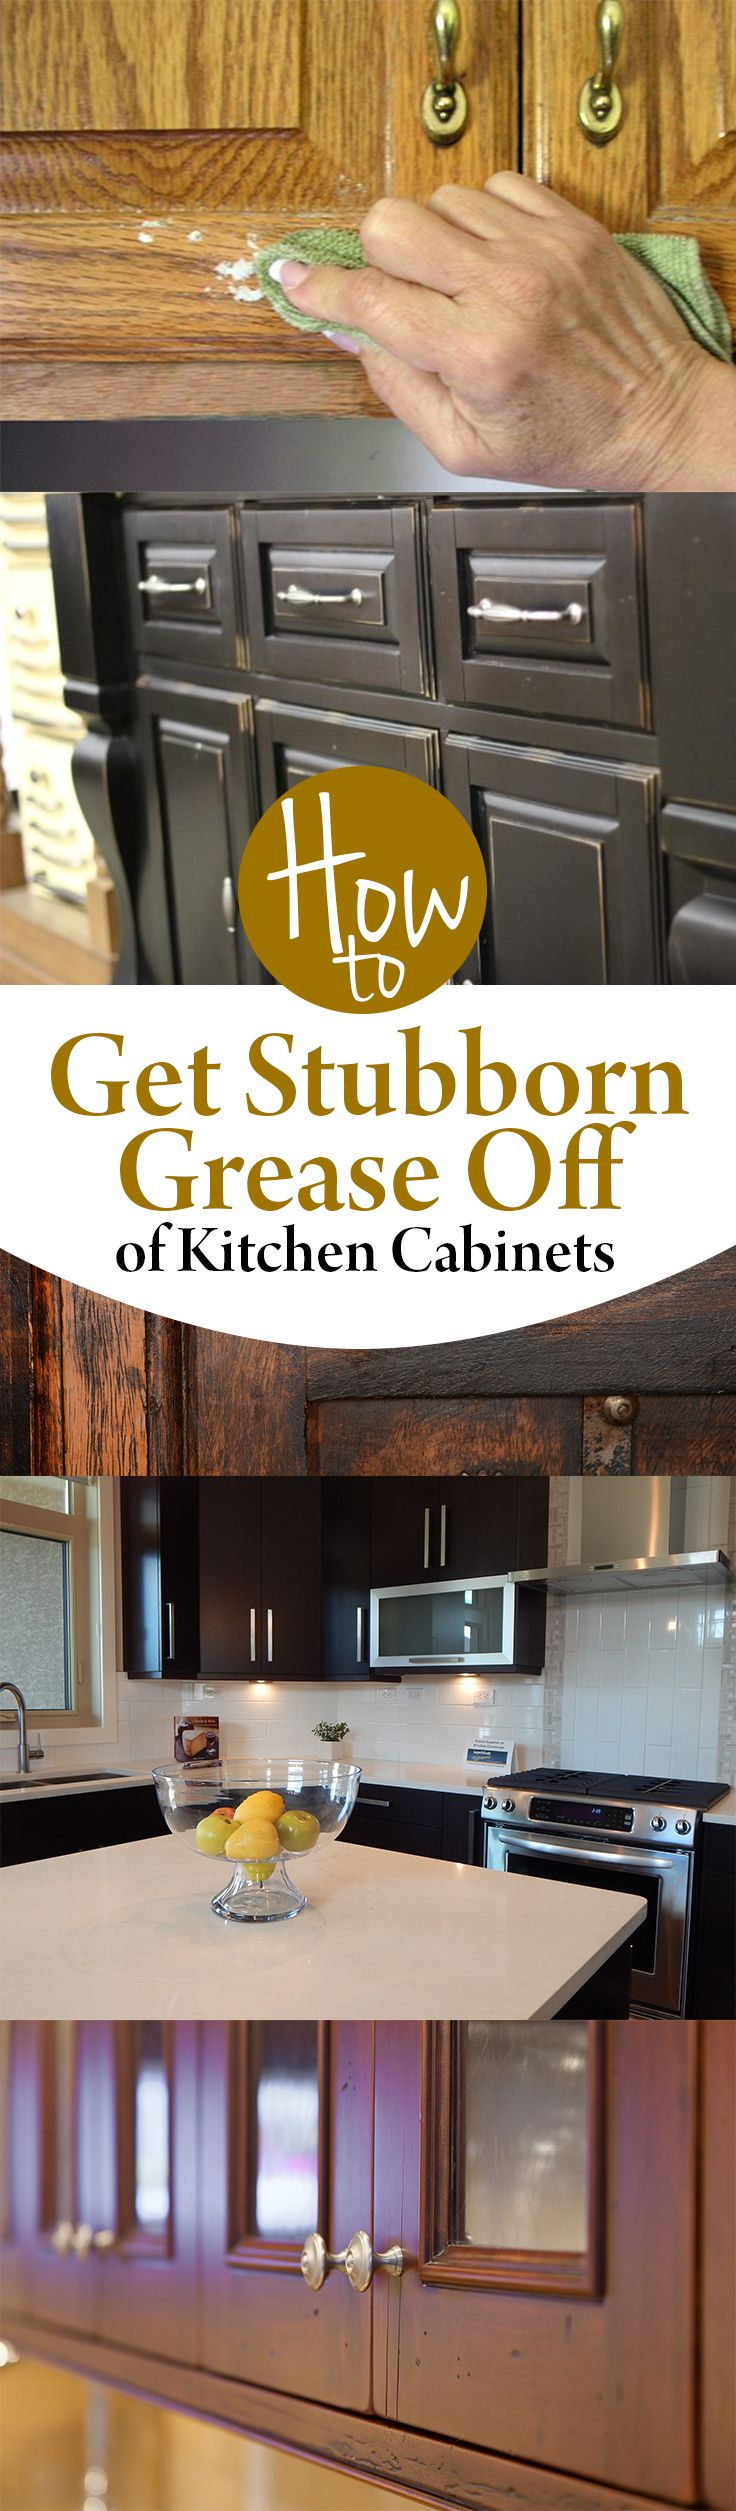 Grease Cleaner For Kitchen Cabinets how to remove grease from kitchen cabinets how to remove grease